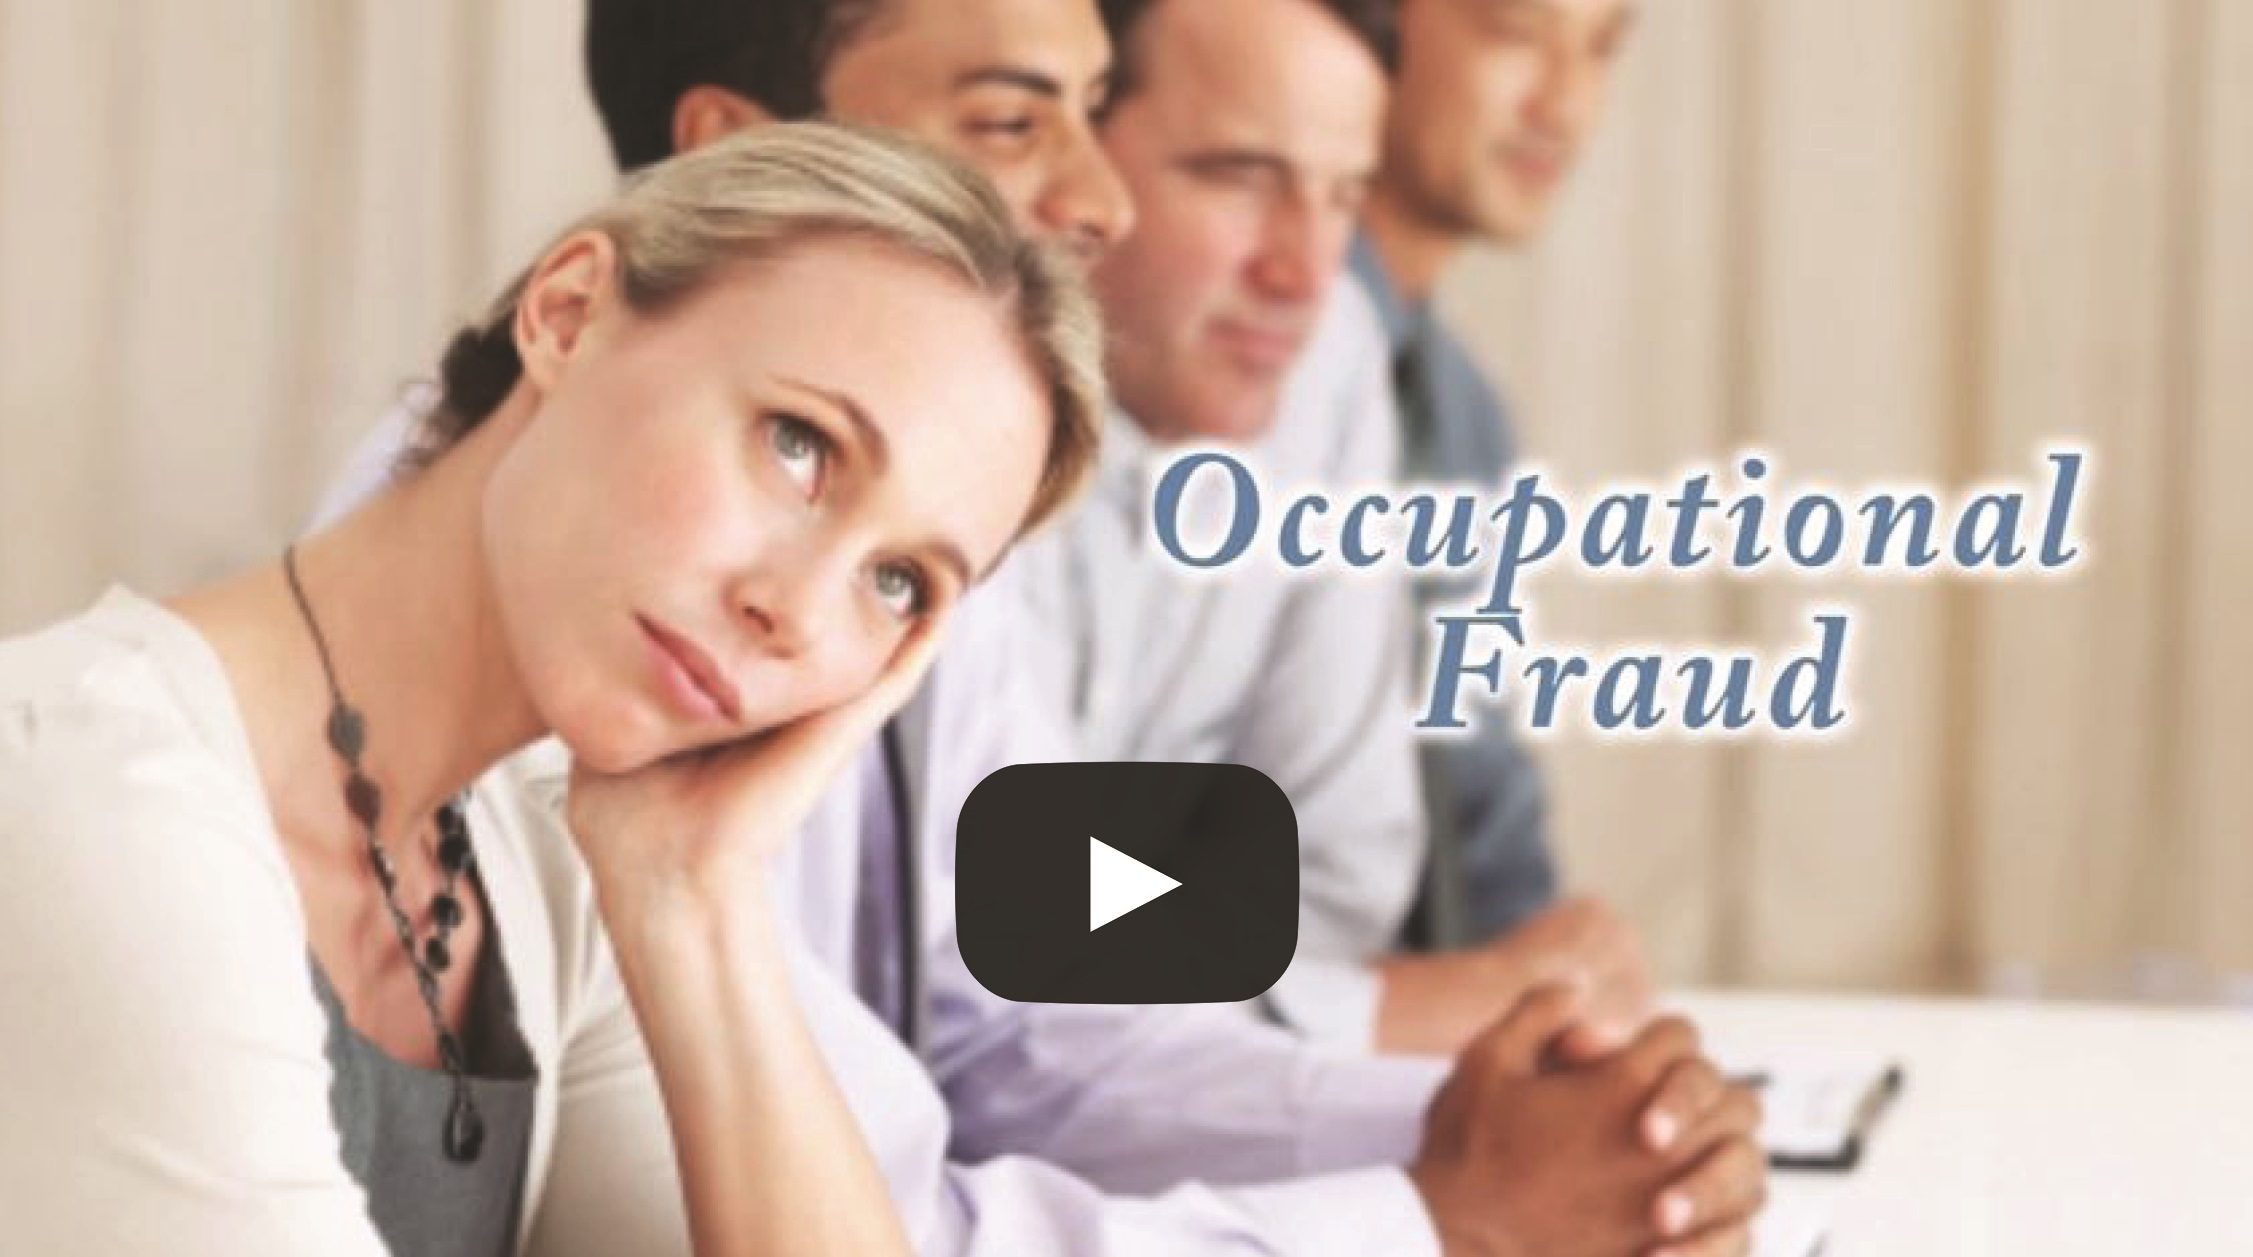 Occupational Fraud